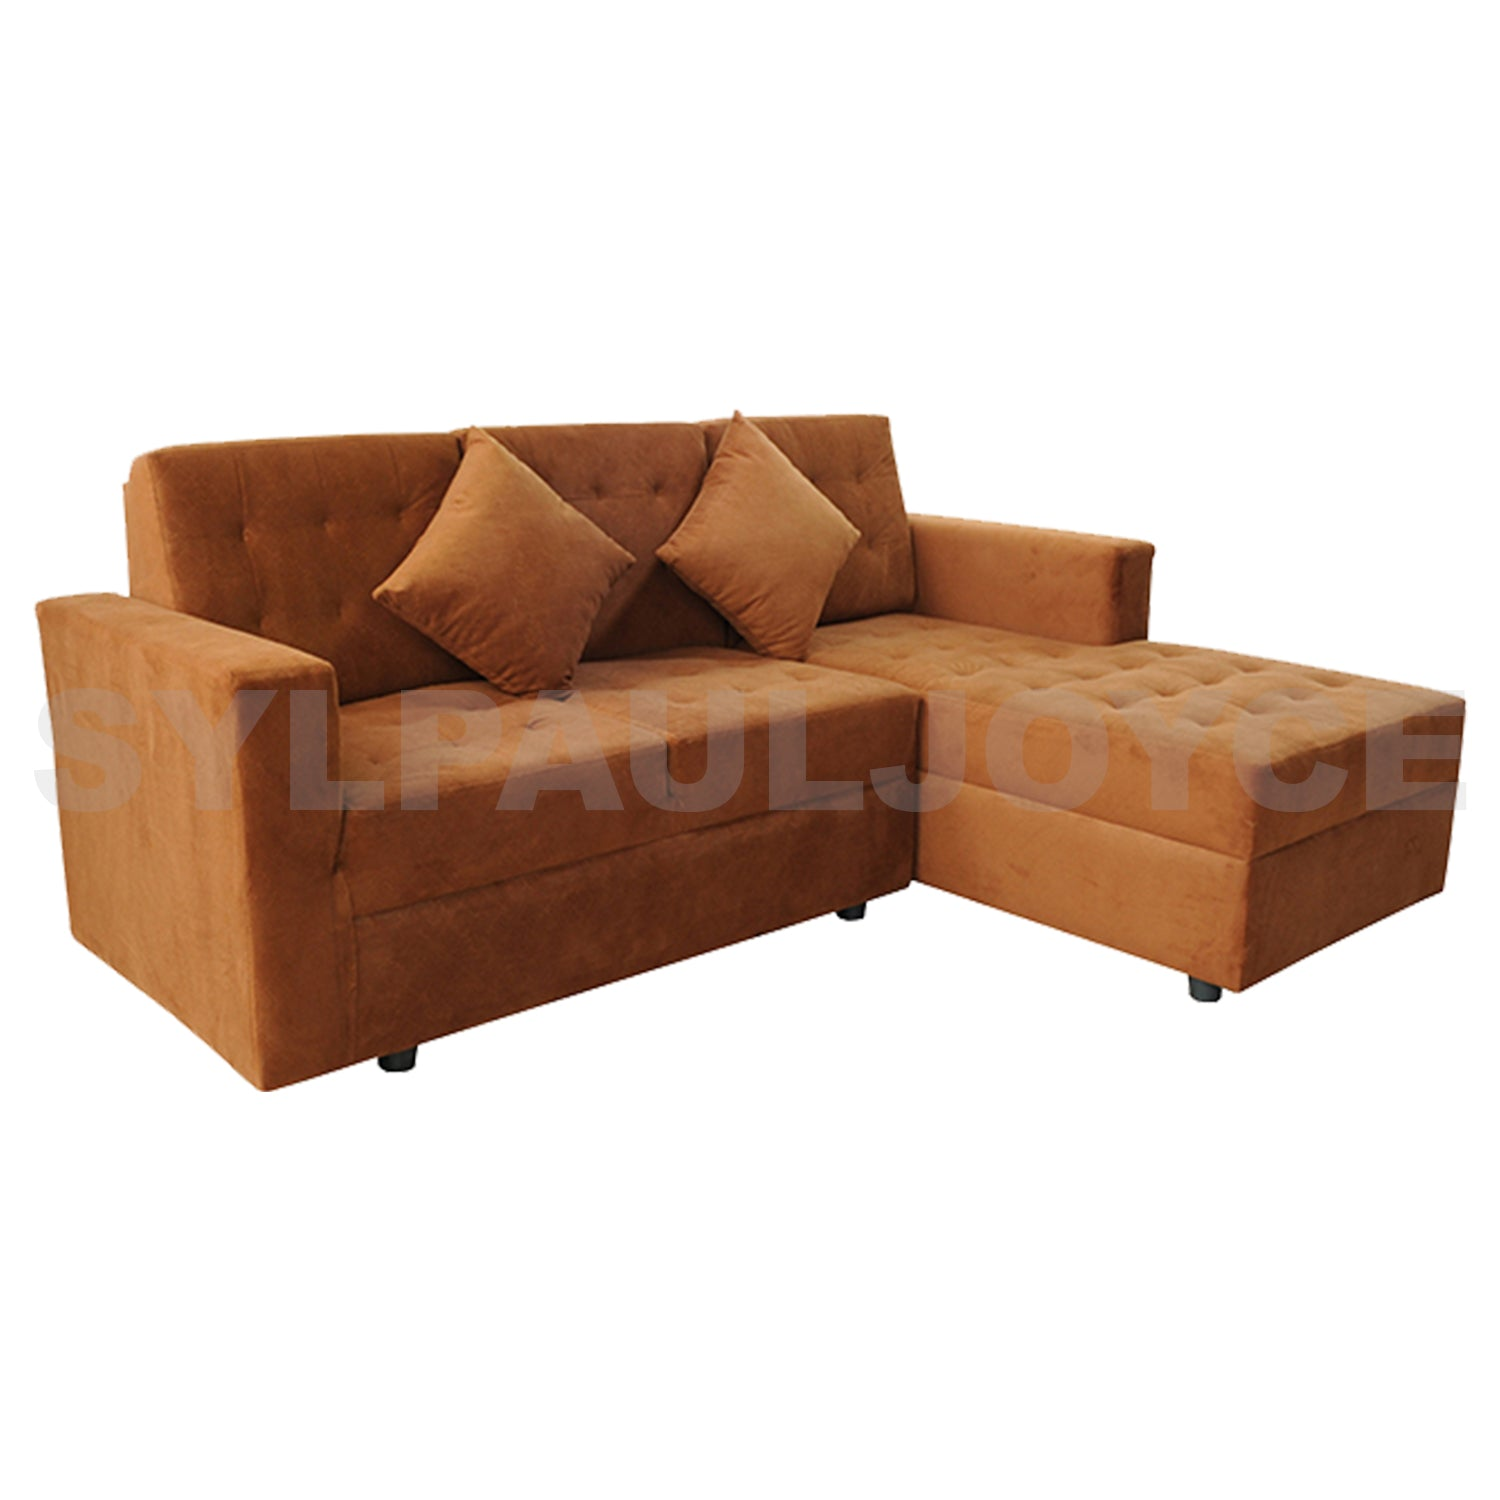 Jairo L-shape Sofa